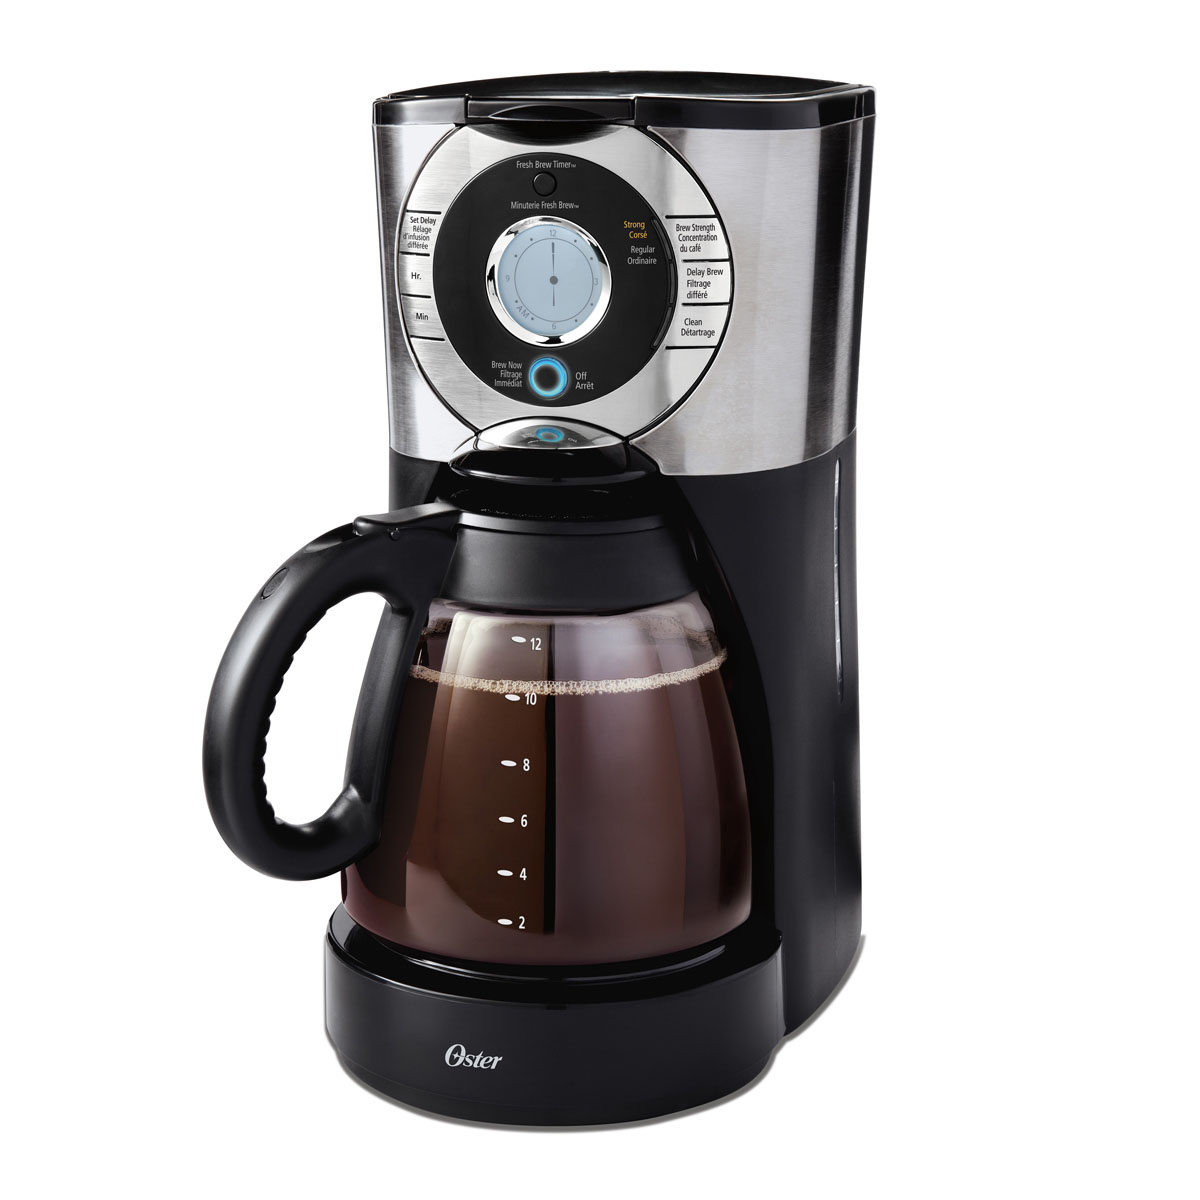 Oster 12 cup programmable coffee maker bvstejx33 033 Coffee maker brands